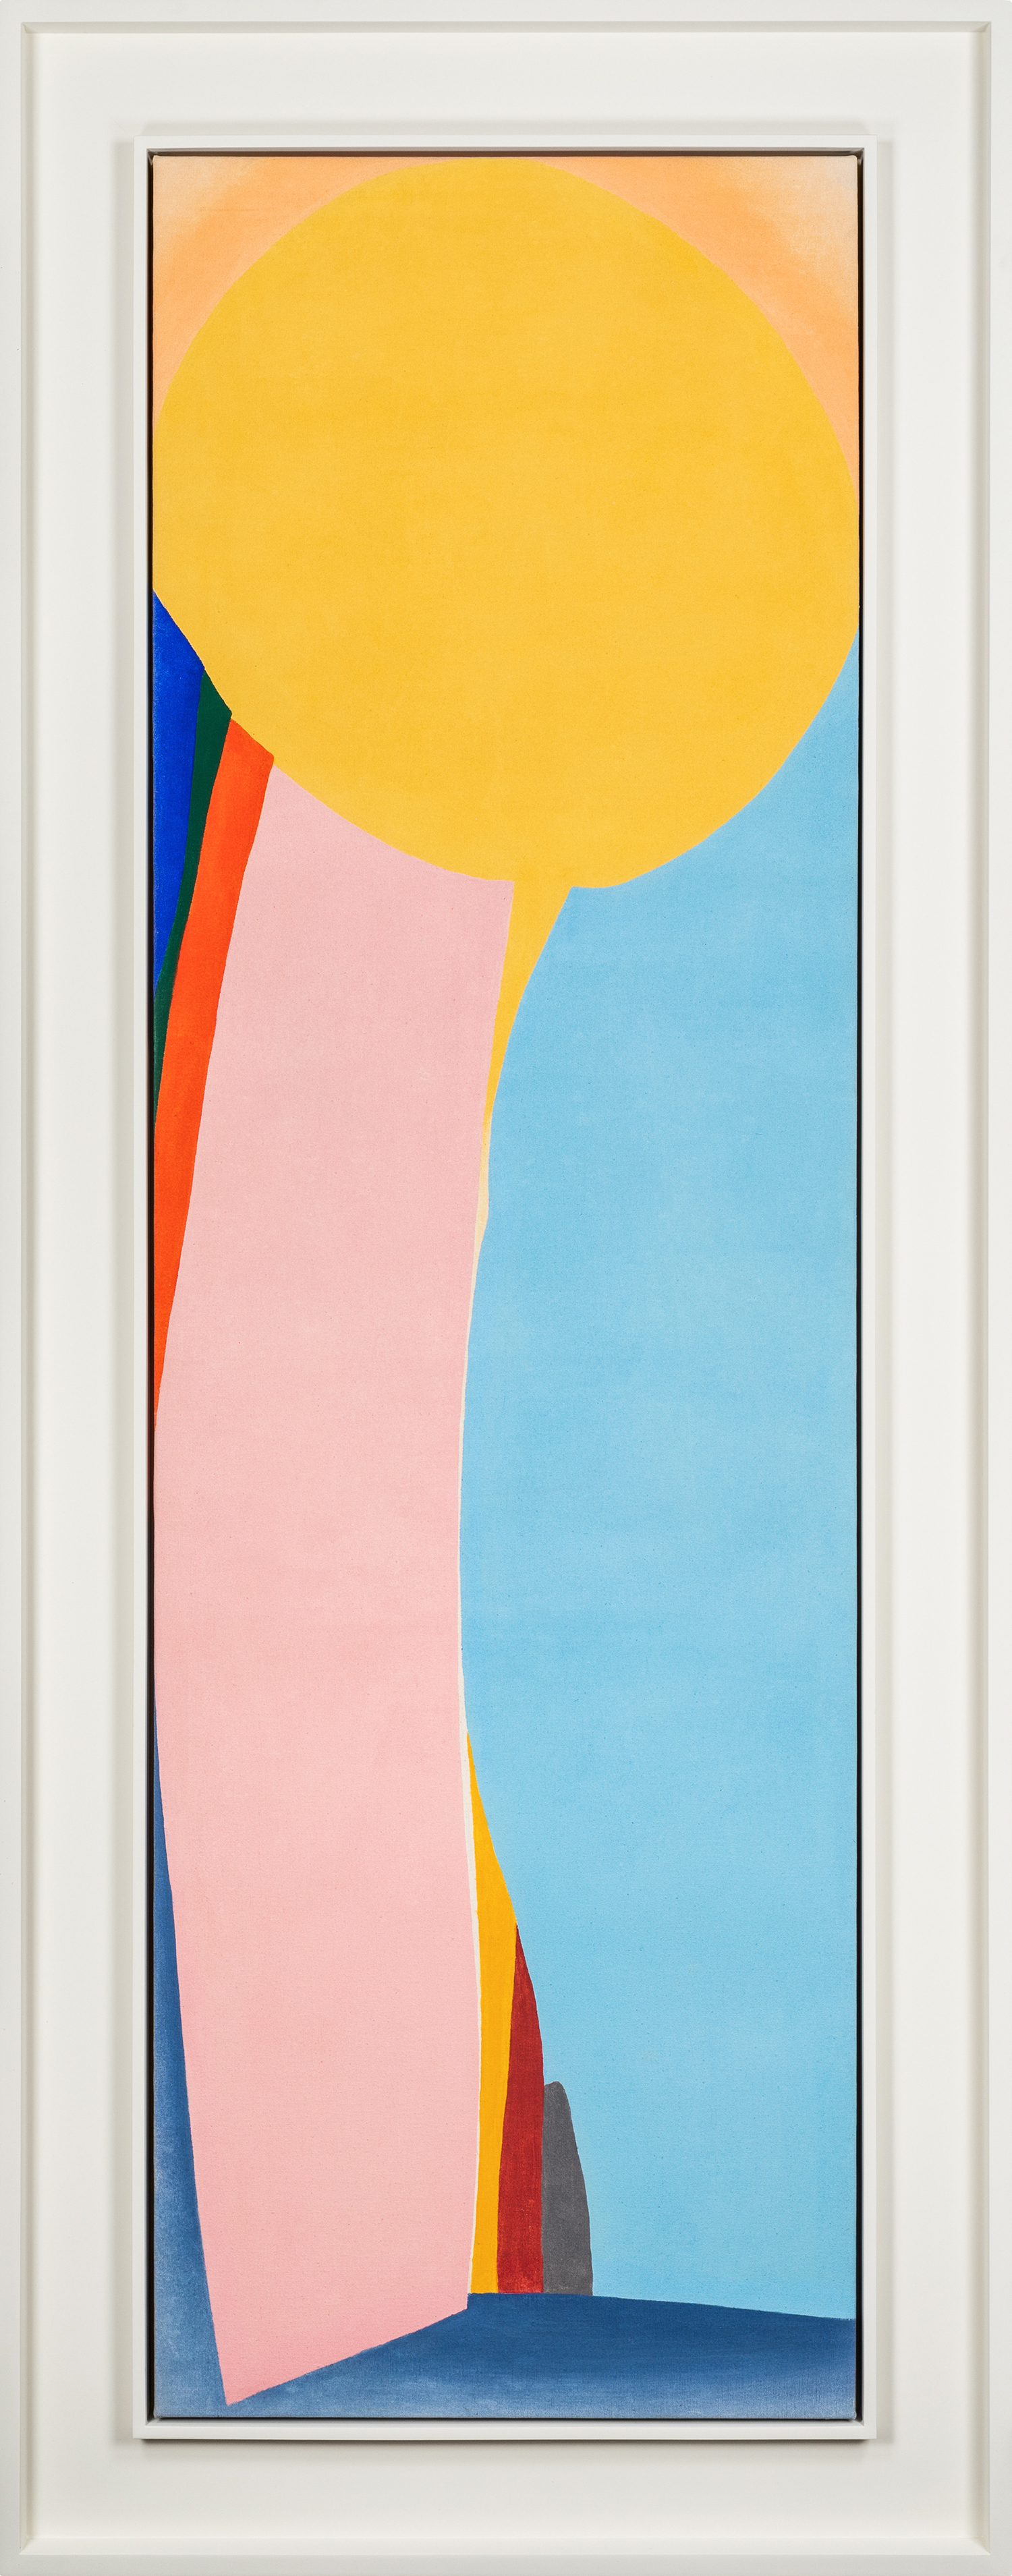 SOLD  Astral,   Acrylic on canvas, 1966, 71 x 22 inches